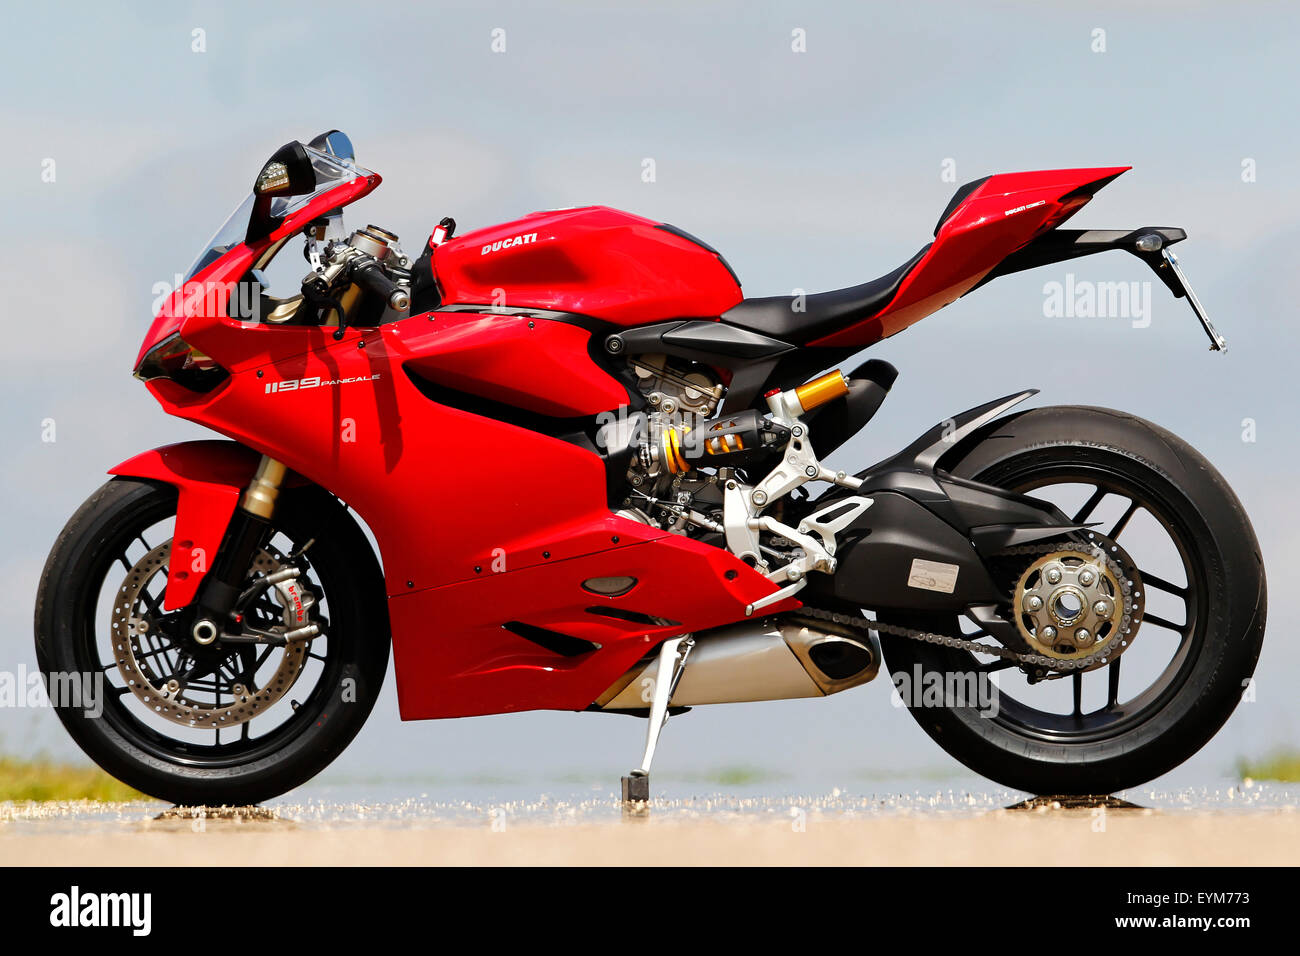 Motorcycle, Ducati Panigale, red, side standard left, - Stock Image